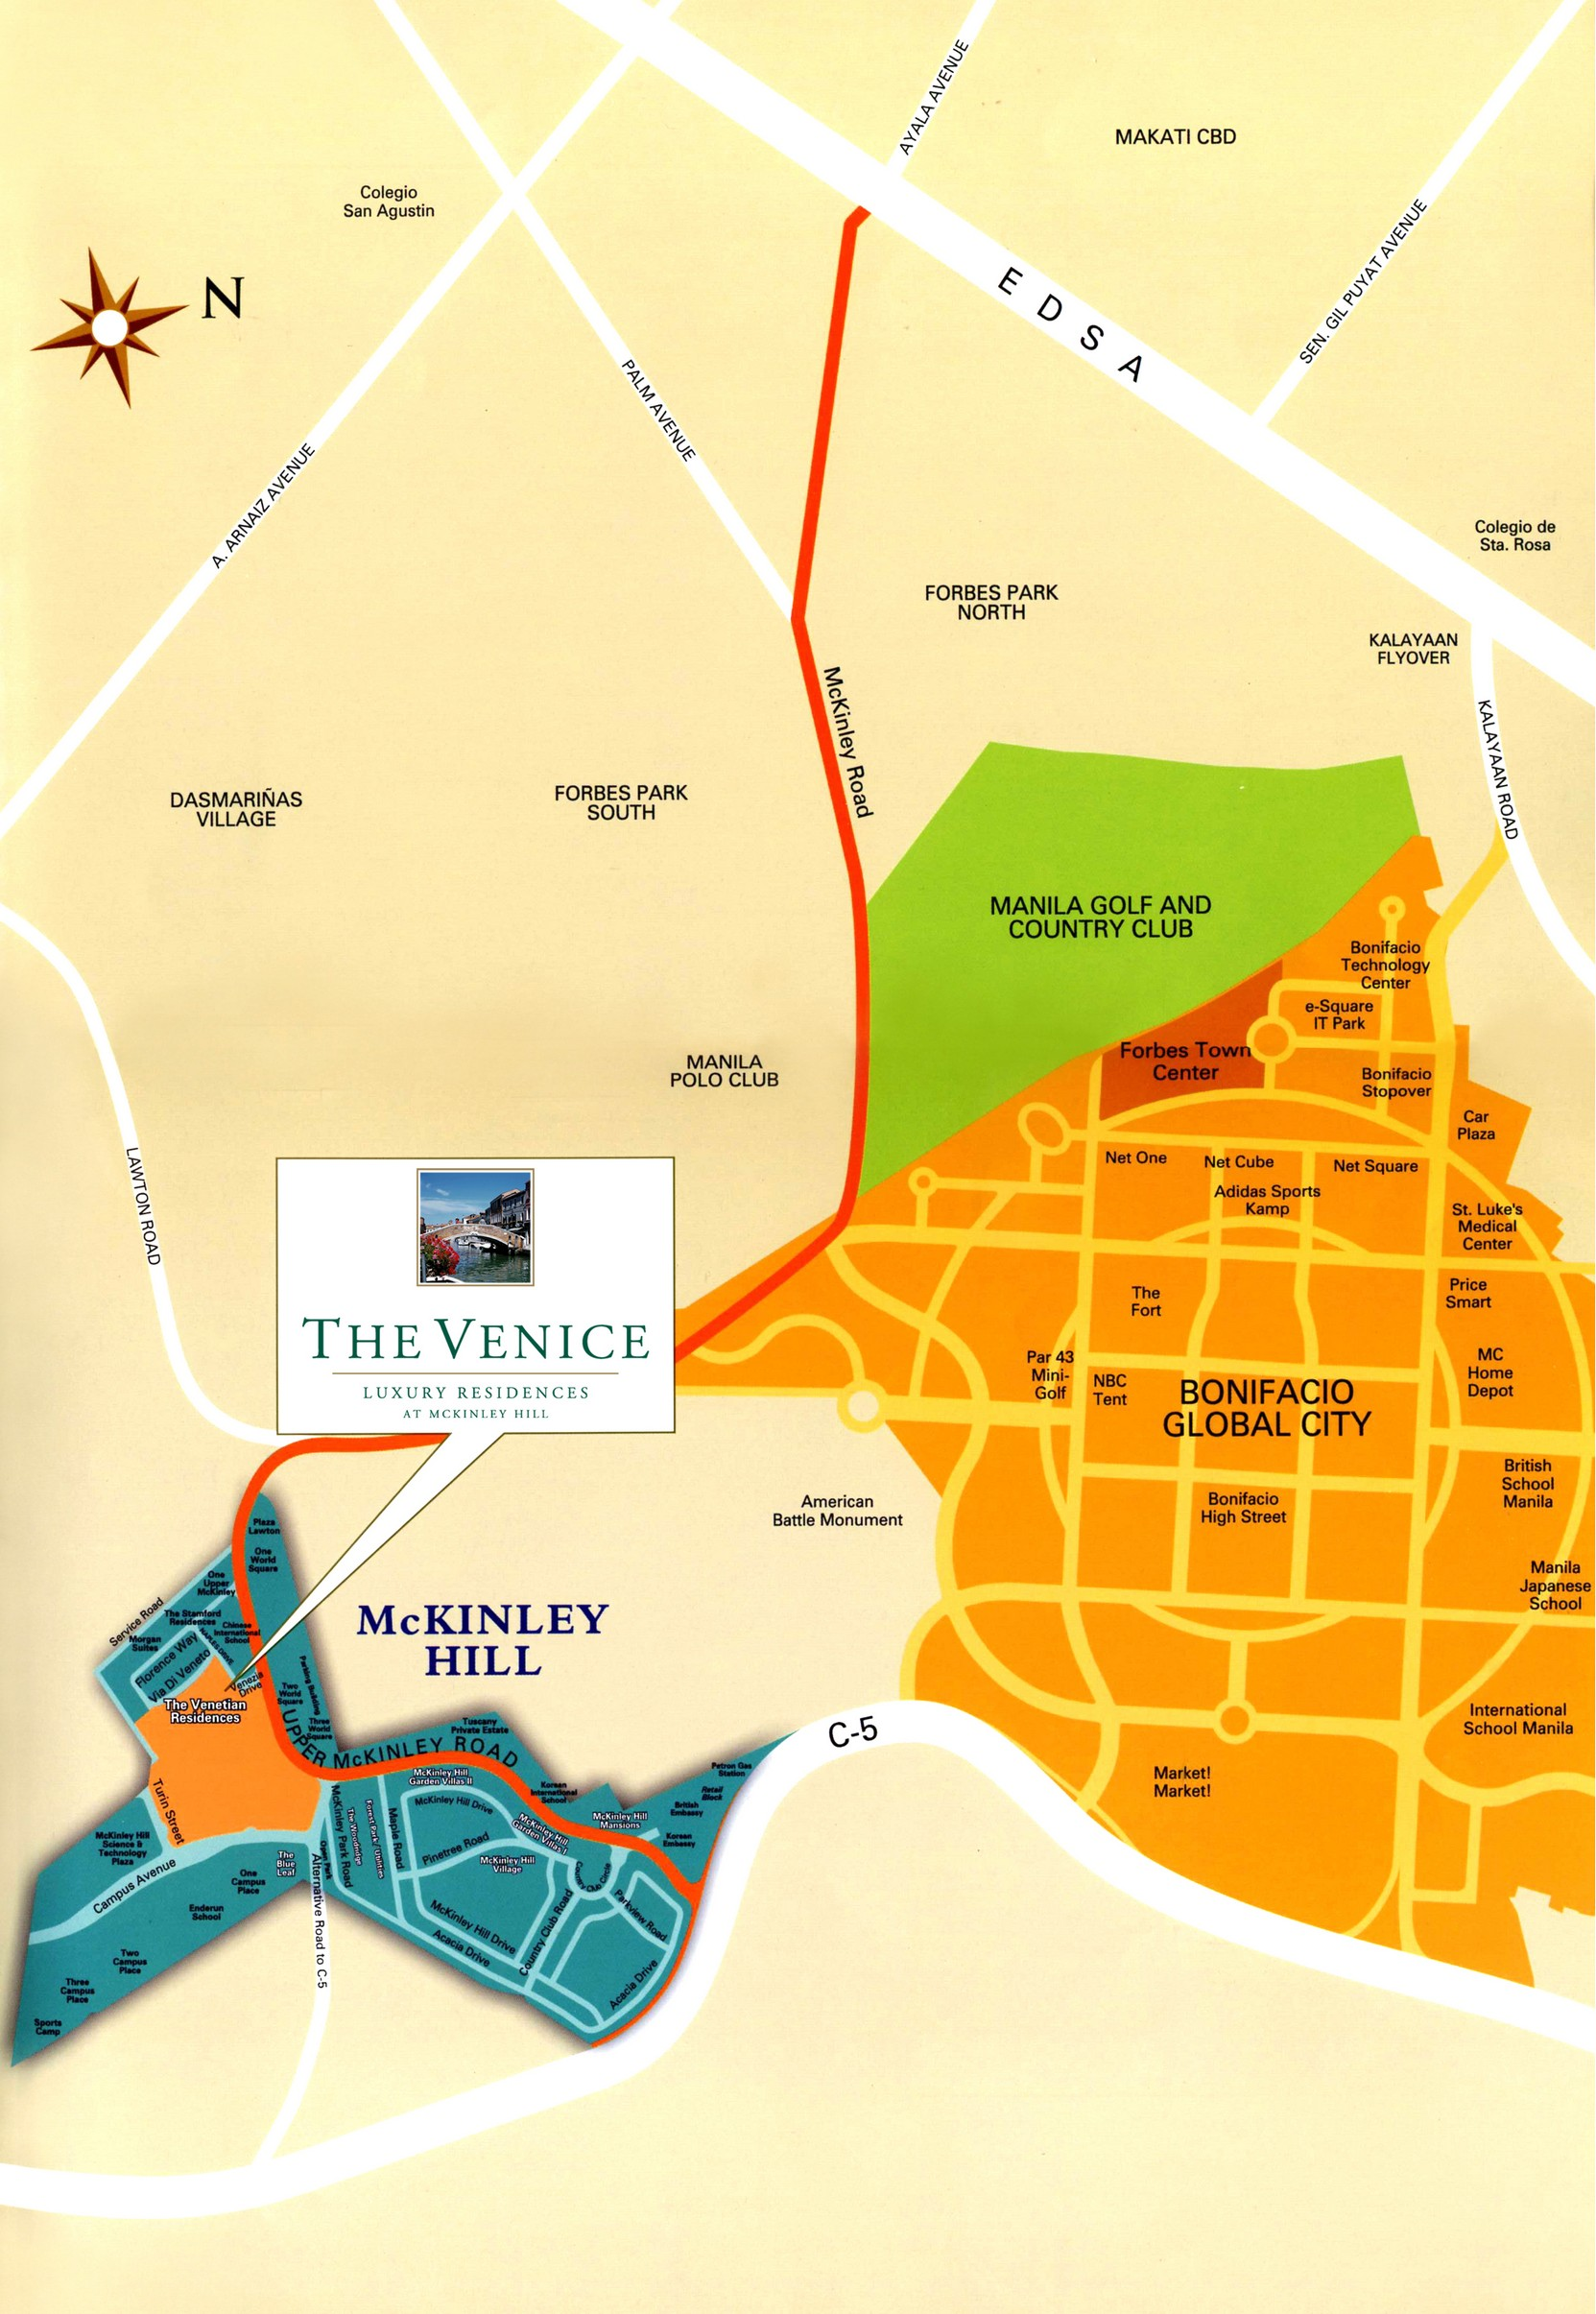 Venice Residences at Mckinley Hill